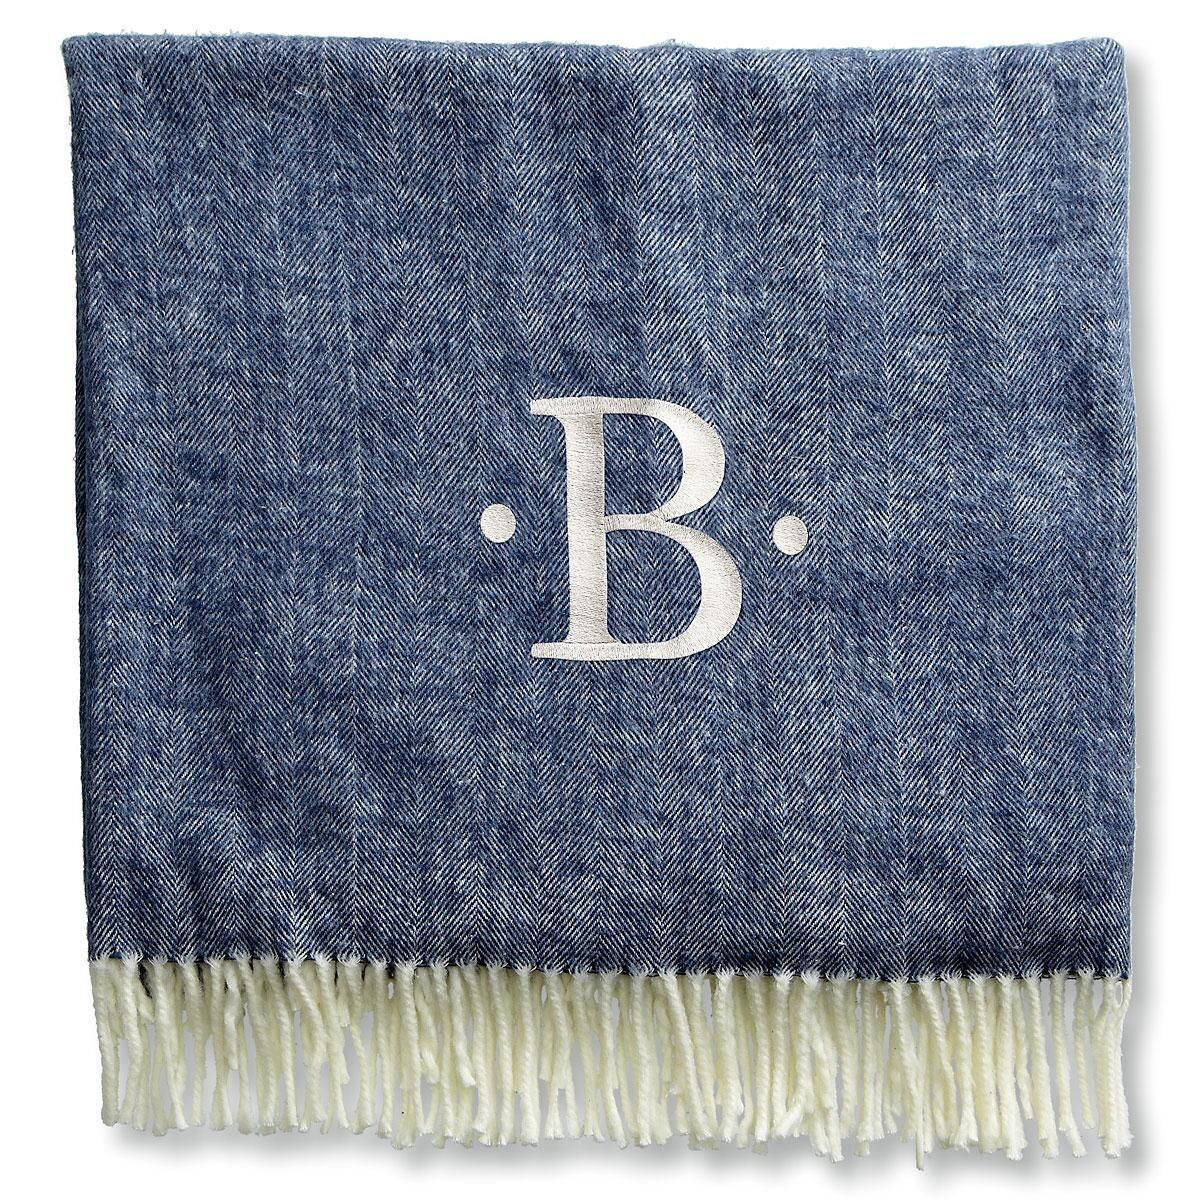 Personalized Blanket with Dots and Initial-3 Colors